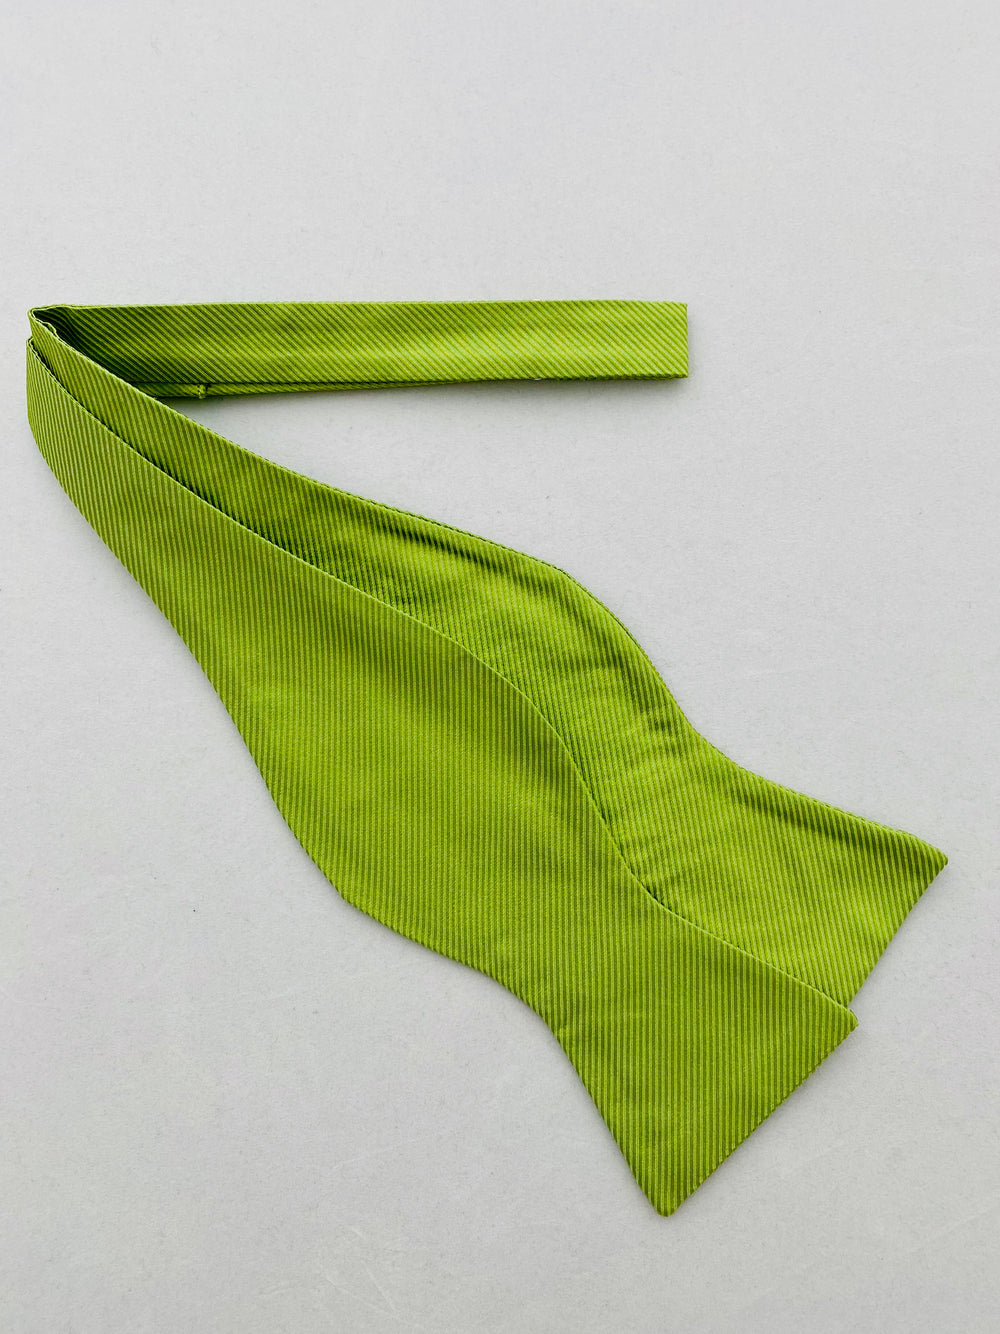 MCM Studio Bow Tie Made In Italy by Fratellini Bright Green